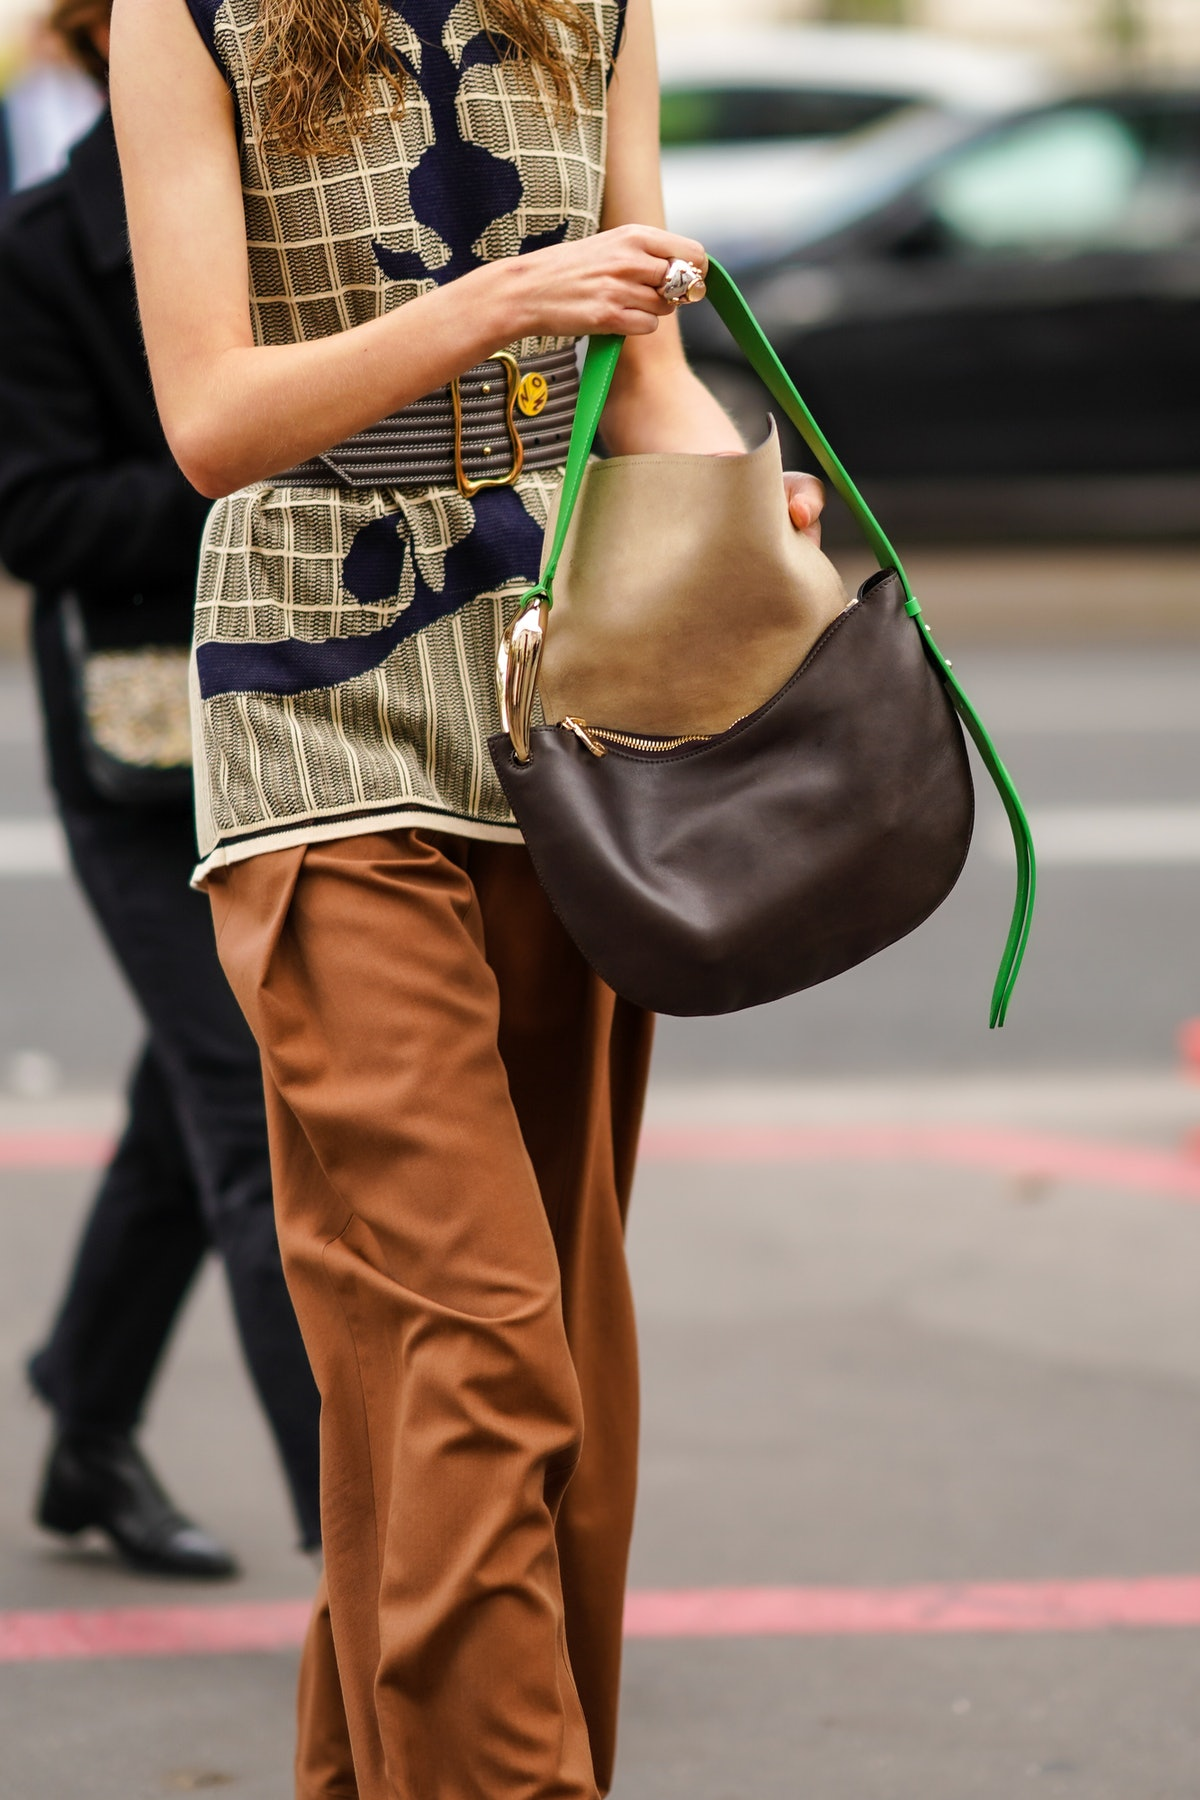 PARIS, FRANCE - OCTOBER 01: A guest wears a ring, bracelets, a  beige sleeveless top with black inserts, brown pants, a dark brown Chloe bag with a green strap, a large brown belt, outside Chloe, during Paris Fashion Week - Womenswear Spring Summer 2021, on October 01, 2020 in Paris, France. (Photo by Edward Berthelot/Getty Images)